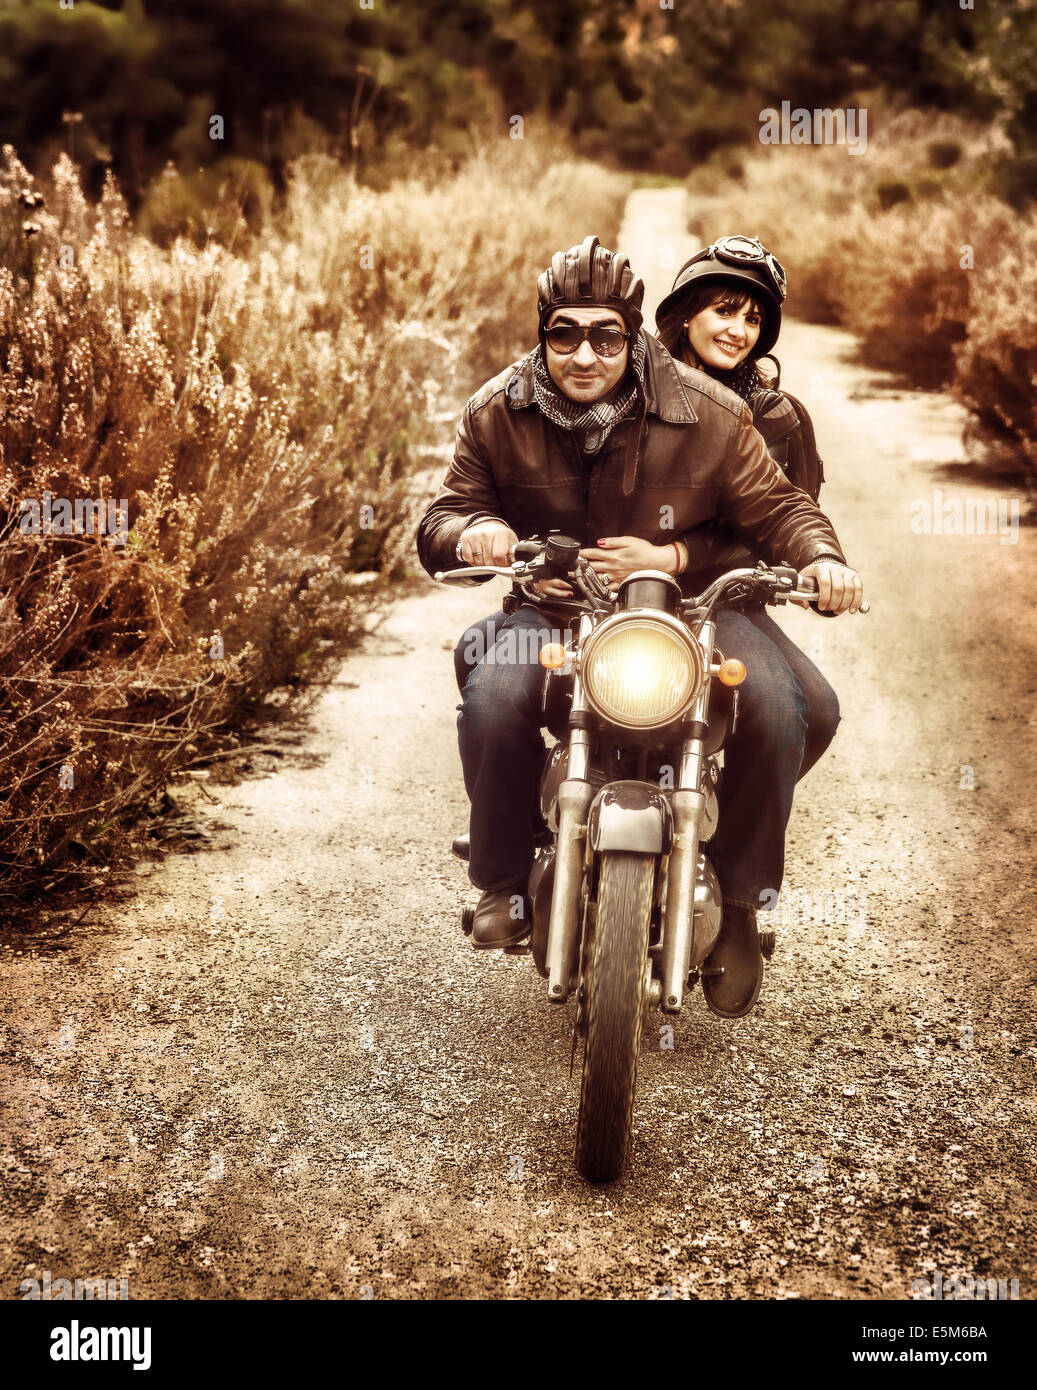 Vintage style image of two happy bikers riding on the road, active family enjoying journey on luxury extreme transport - Stock Image